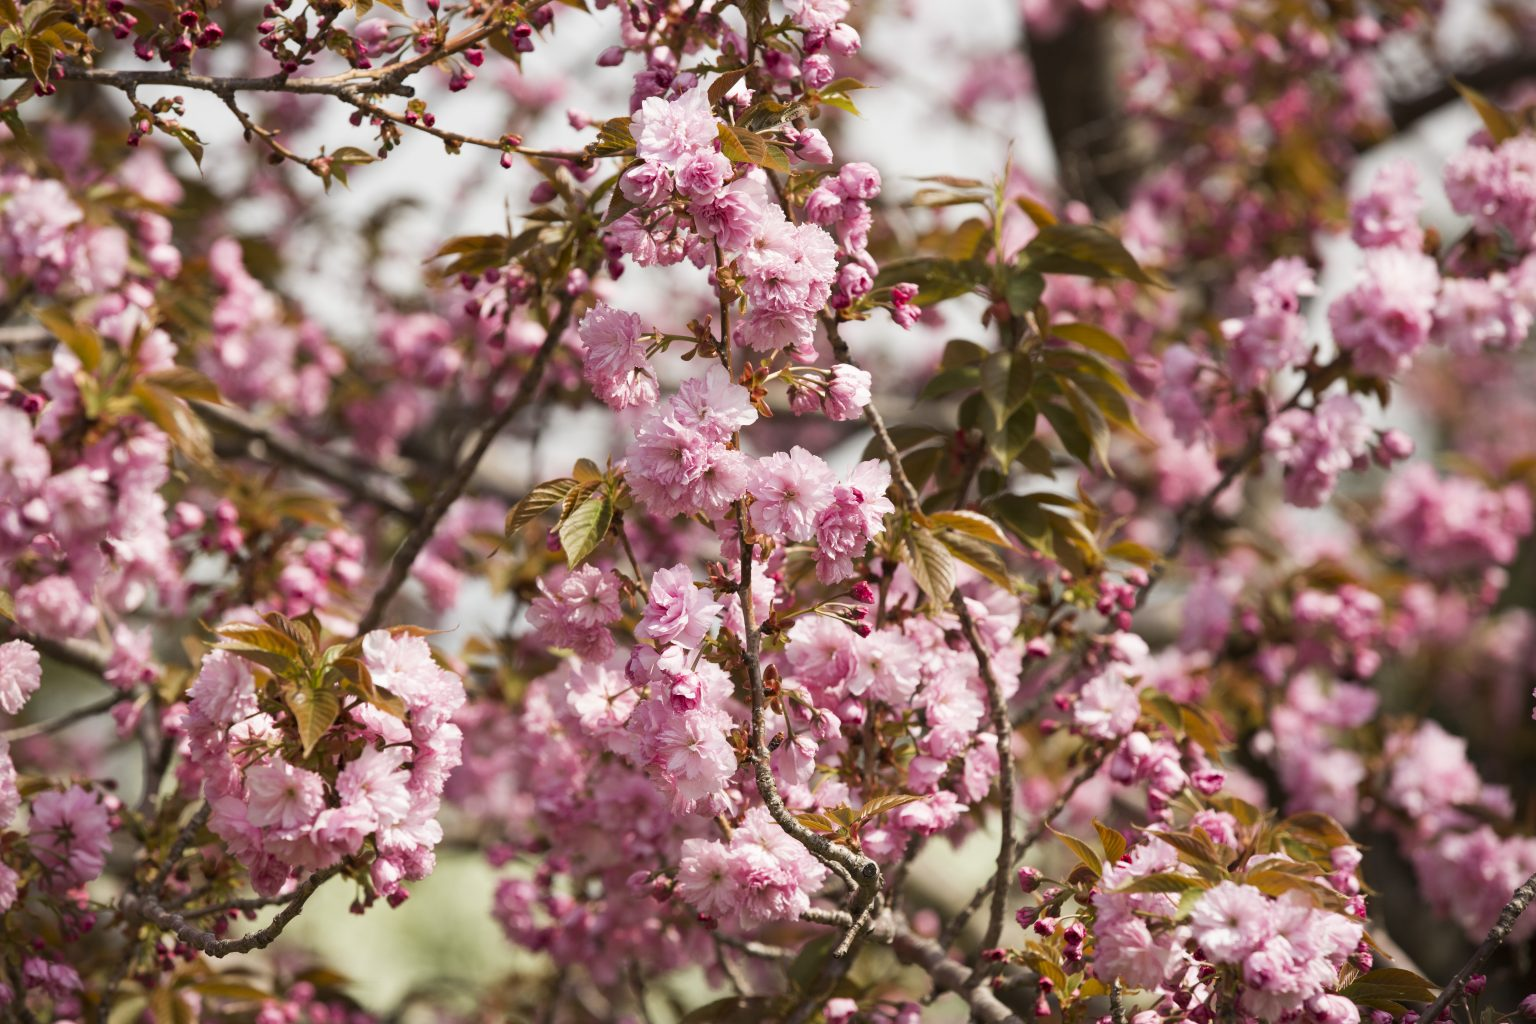 kanzan cherry blossoms at The New York Botanical Garden